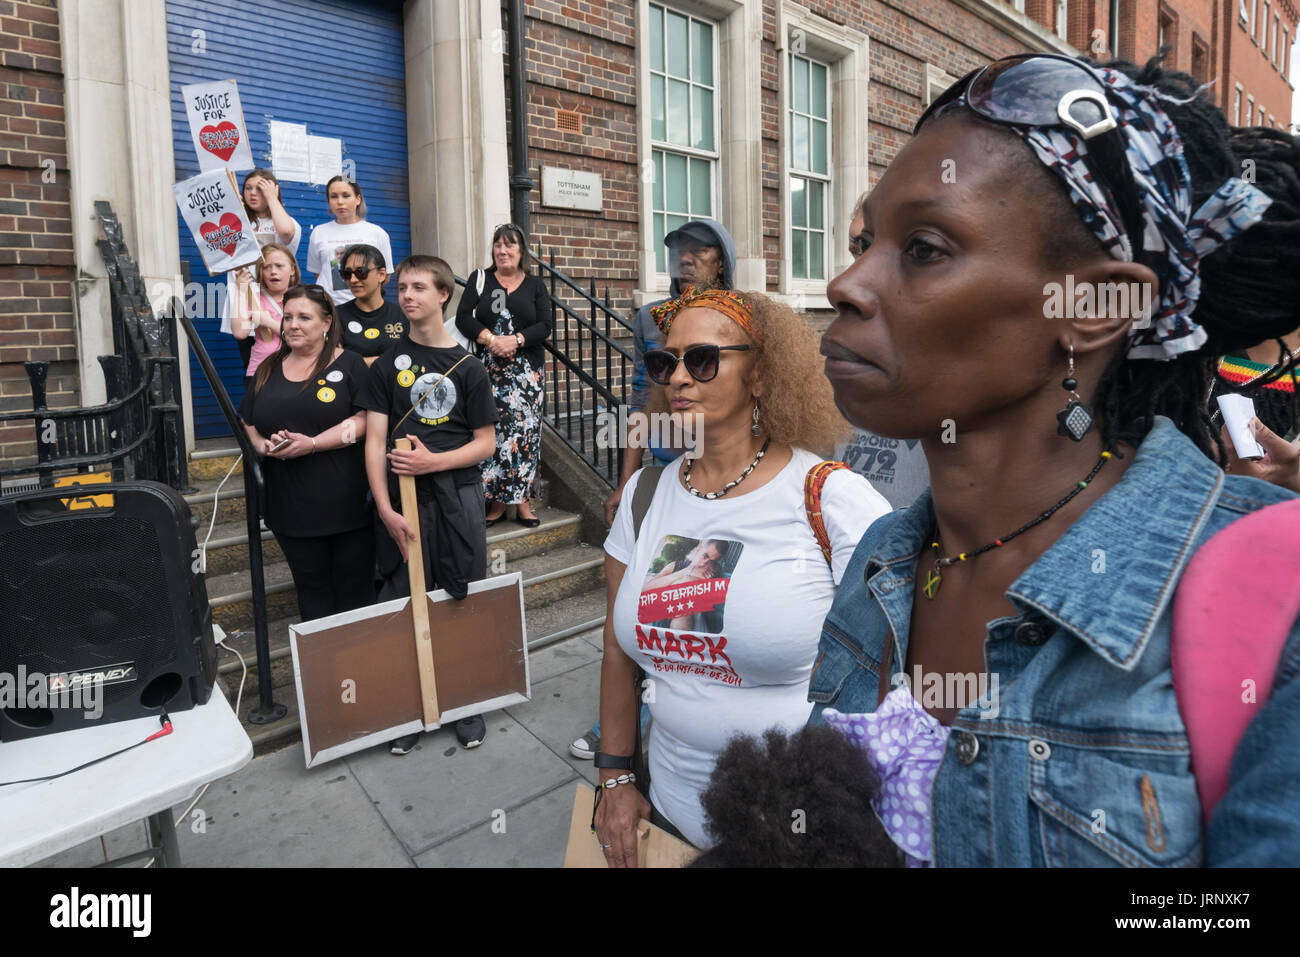 London, UK. 4th Aug, 2017. London, UK. 4th August 2017. People at the rally at Tottenham Police Station remembering the death of Mark Duggan on the sixth anniversary of his killing by police listen to Tottenham poet, Jason Nwansi. THe vent also remembered the police killing of other members of the Tottenham community - Cynthia Jarrett, Joy Gardner, Roger Sylvester, Mark Duggan and Jermaine Baker and the recent murders of Rashan Charles, Darren Cumberbatch and Edson Da Costa. Led by Stafford Scott, there was poetry, a minute of silence and speeches from family members as well as local activi - Stock Image